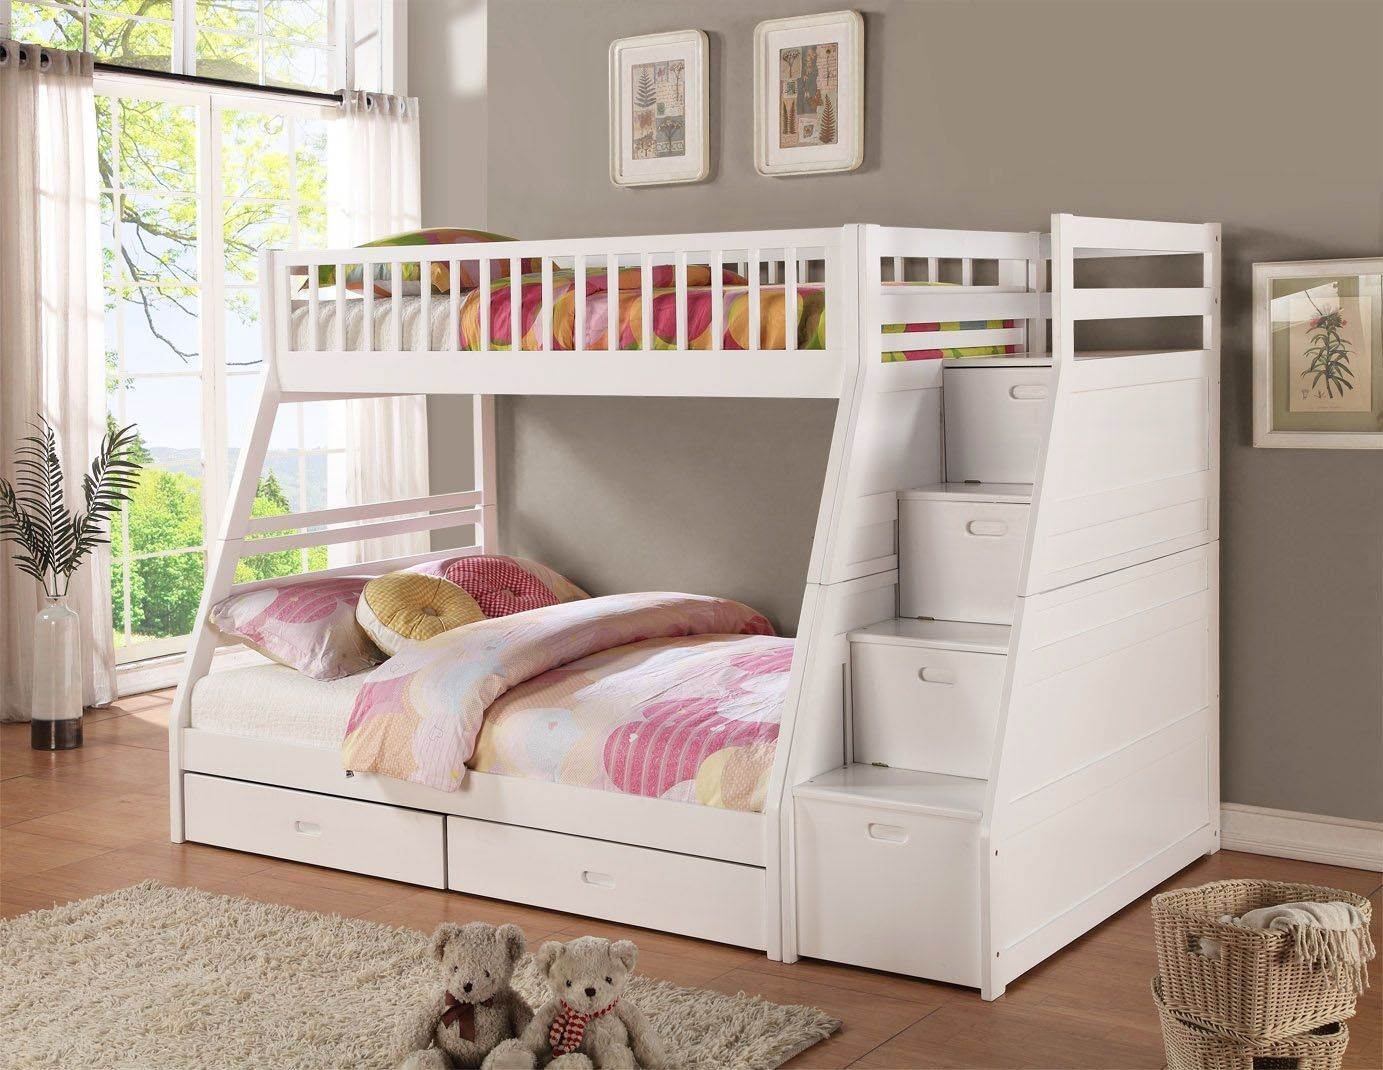 Loft bed plans for full size mattress   Boys Bunk Beds with Steps  Interior Design Small Bedroom Check